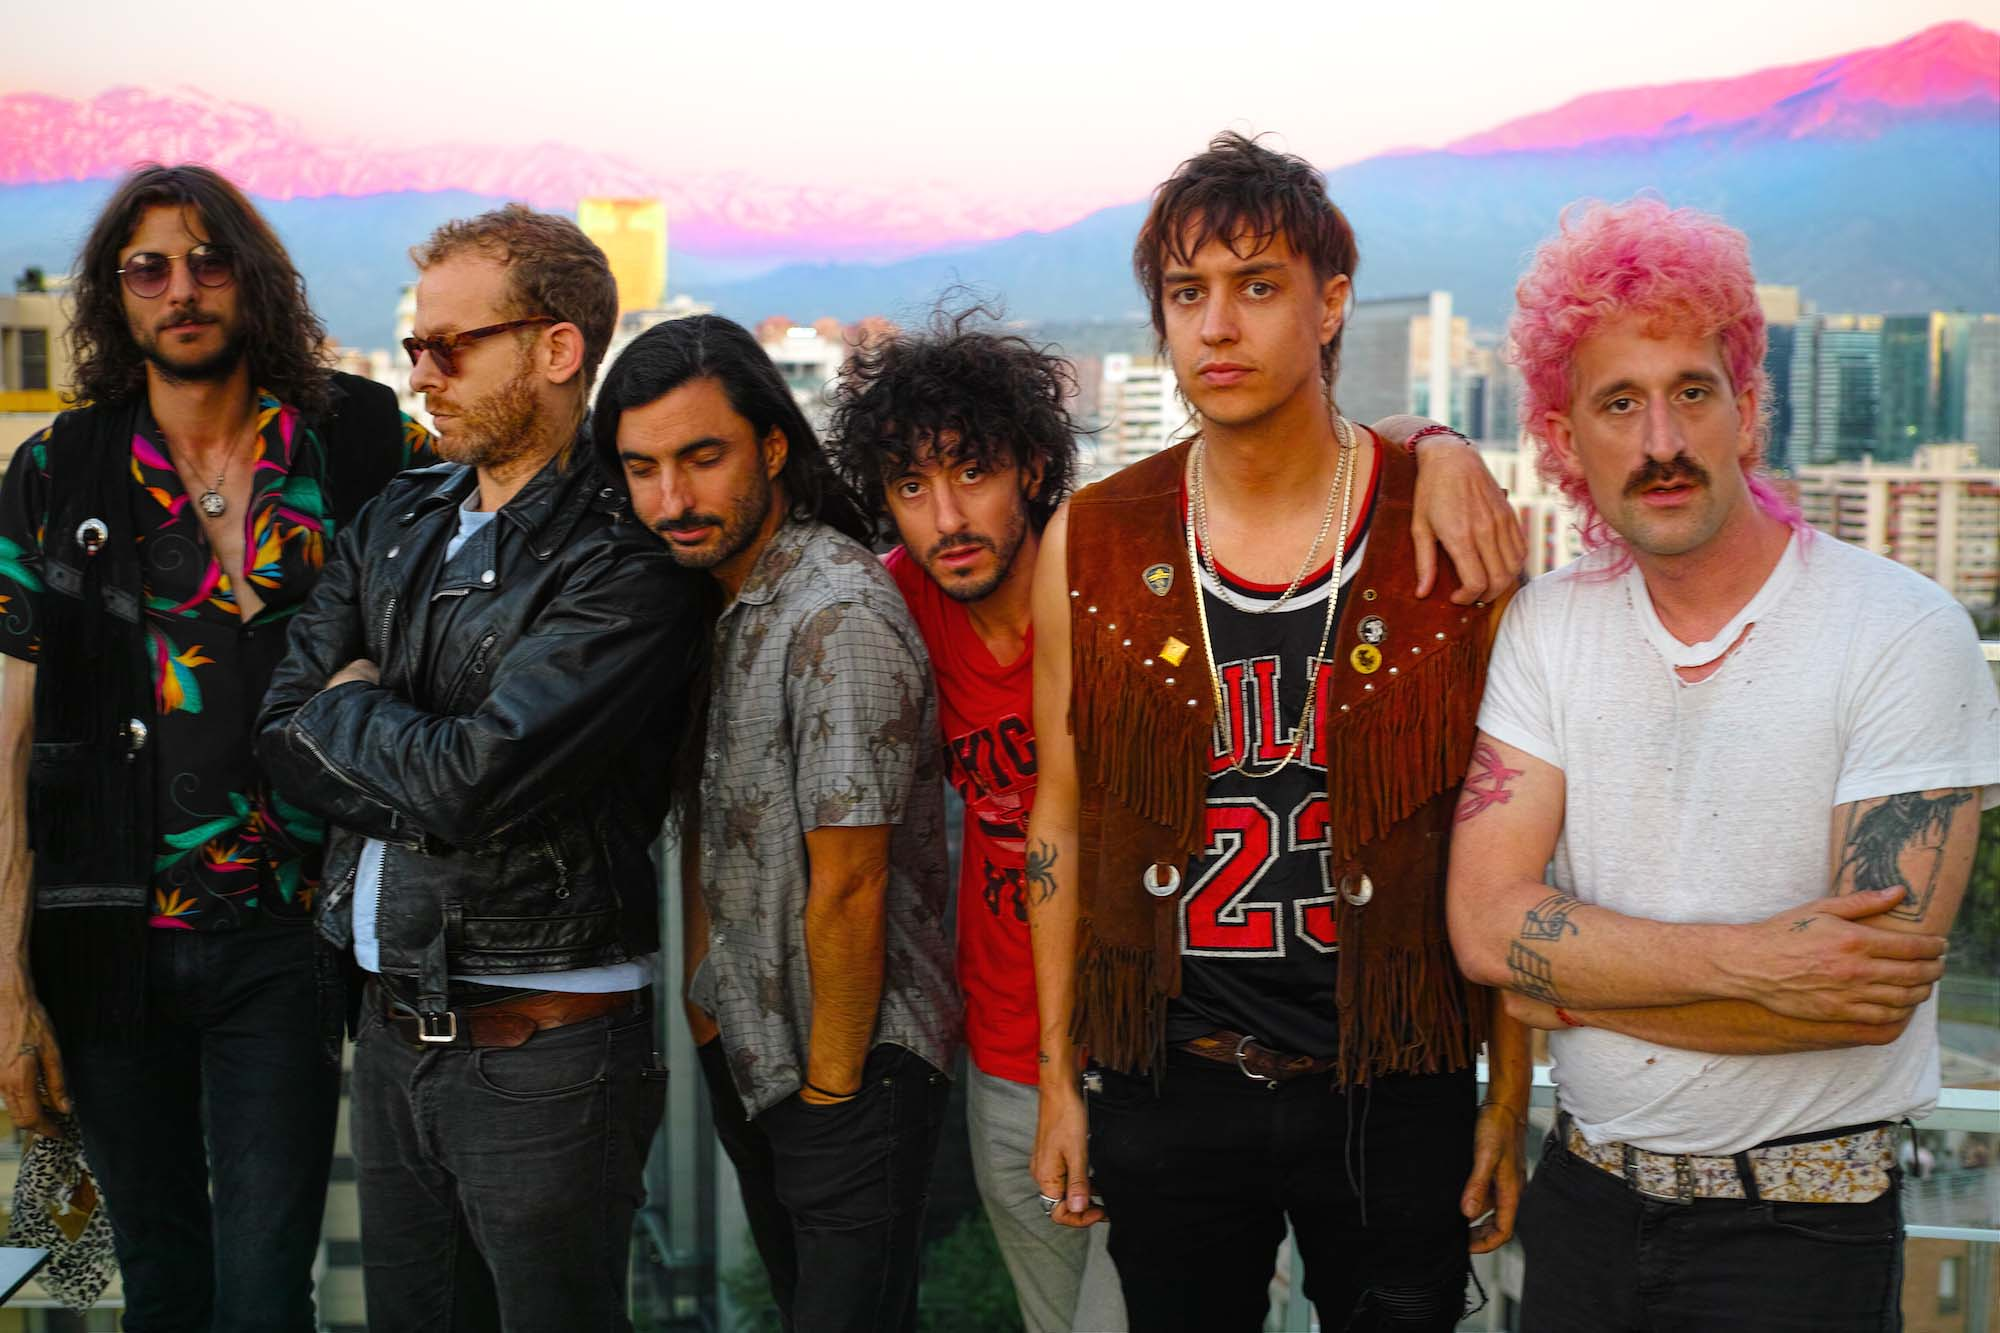 Watch The Voidz play 'QYURRYUS' on Corden